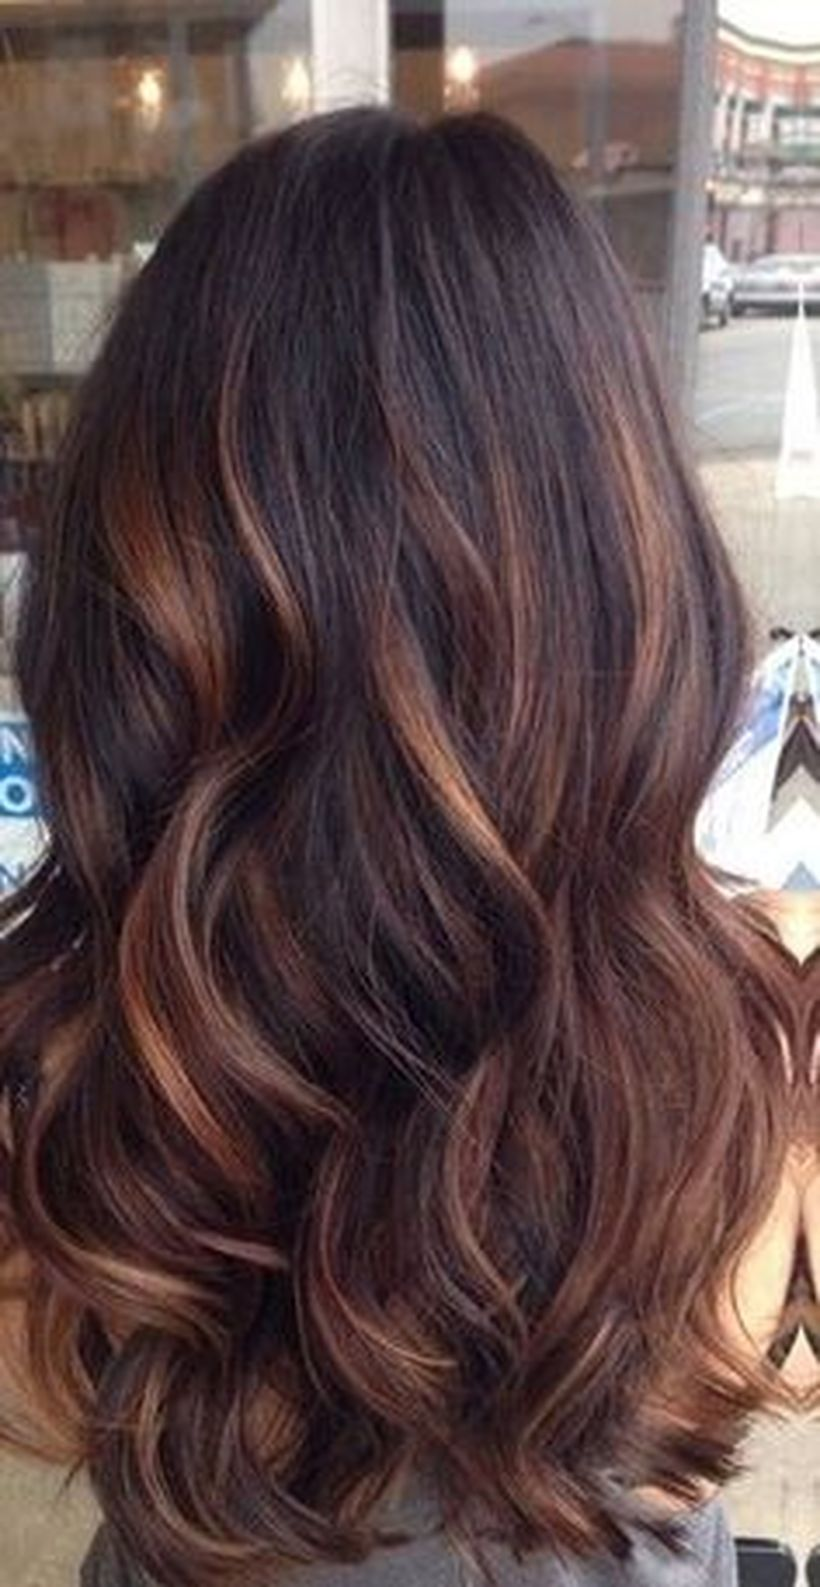 Stunning Fall Hair Colors Ideas For Brunettes 2017 68 Fashion Best